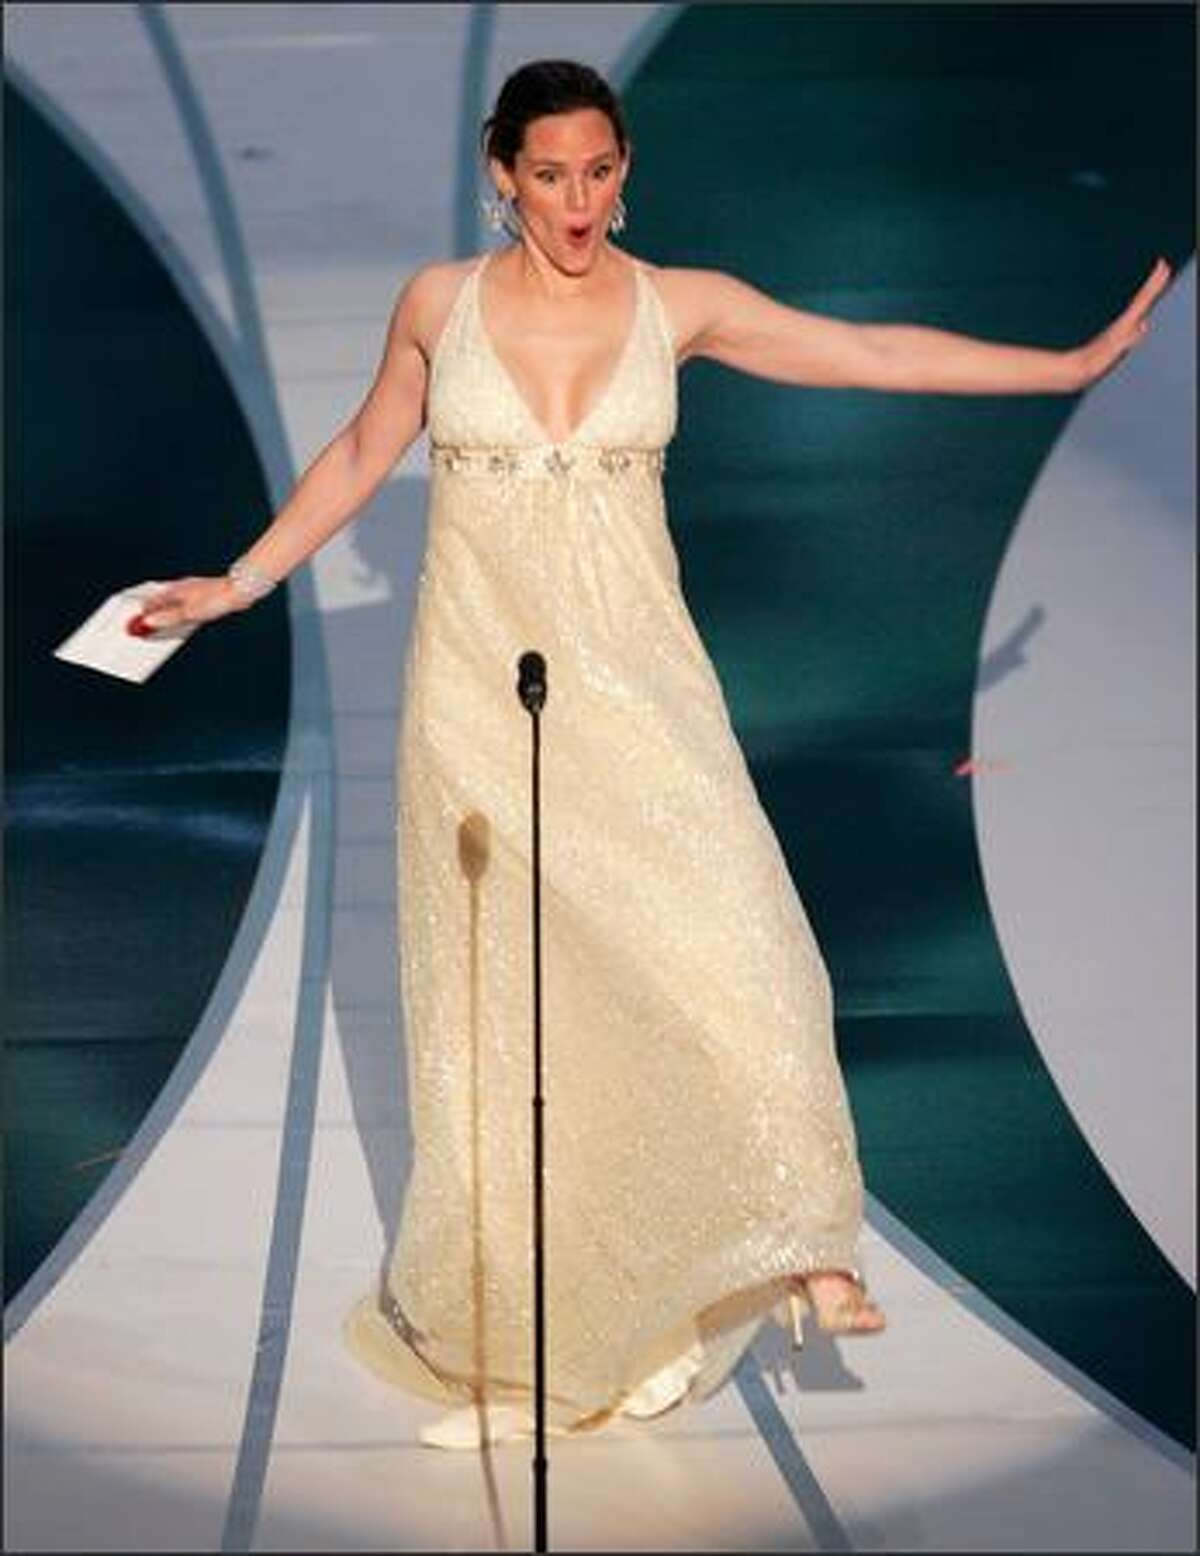 """Whoa, there, Jennifer Garner! You almost tripped into Oscar history Sunday night, but you and your superspy """"Alias"""" balance skills came to the rescue! Nice save. Garner was presenting an award for sound editing, but the guffaws that would have followed such an accident could have blown away the winner."""